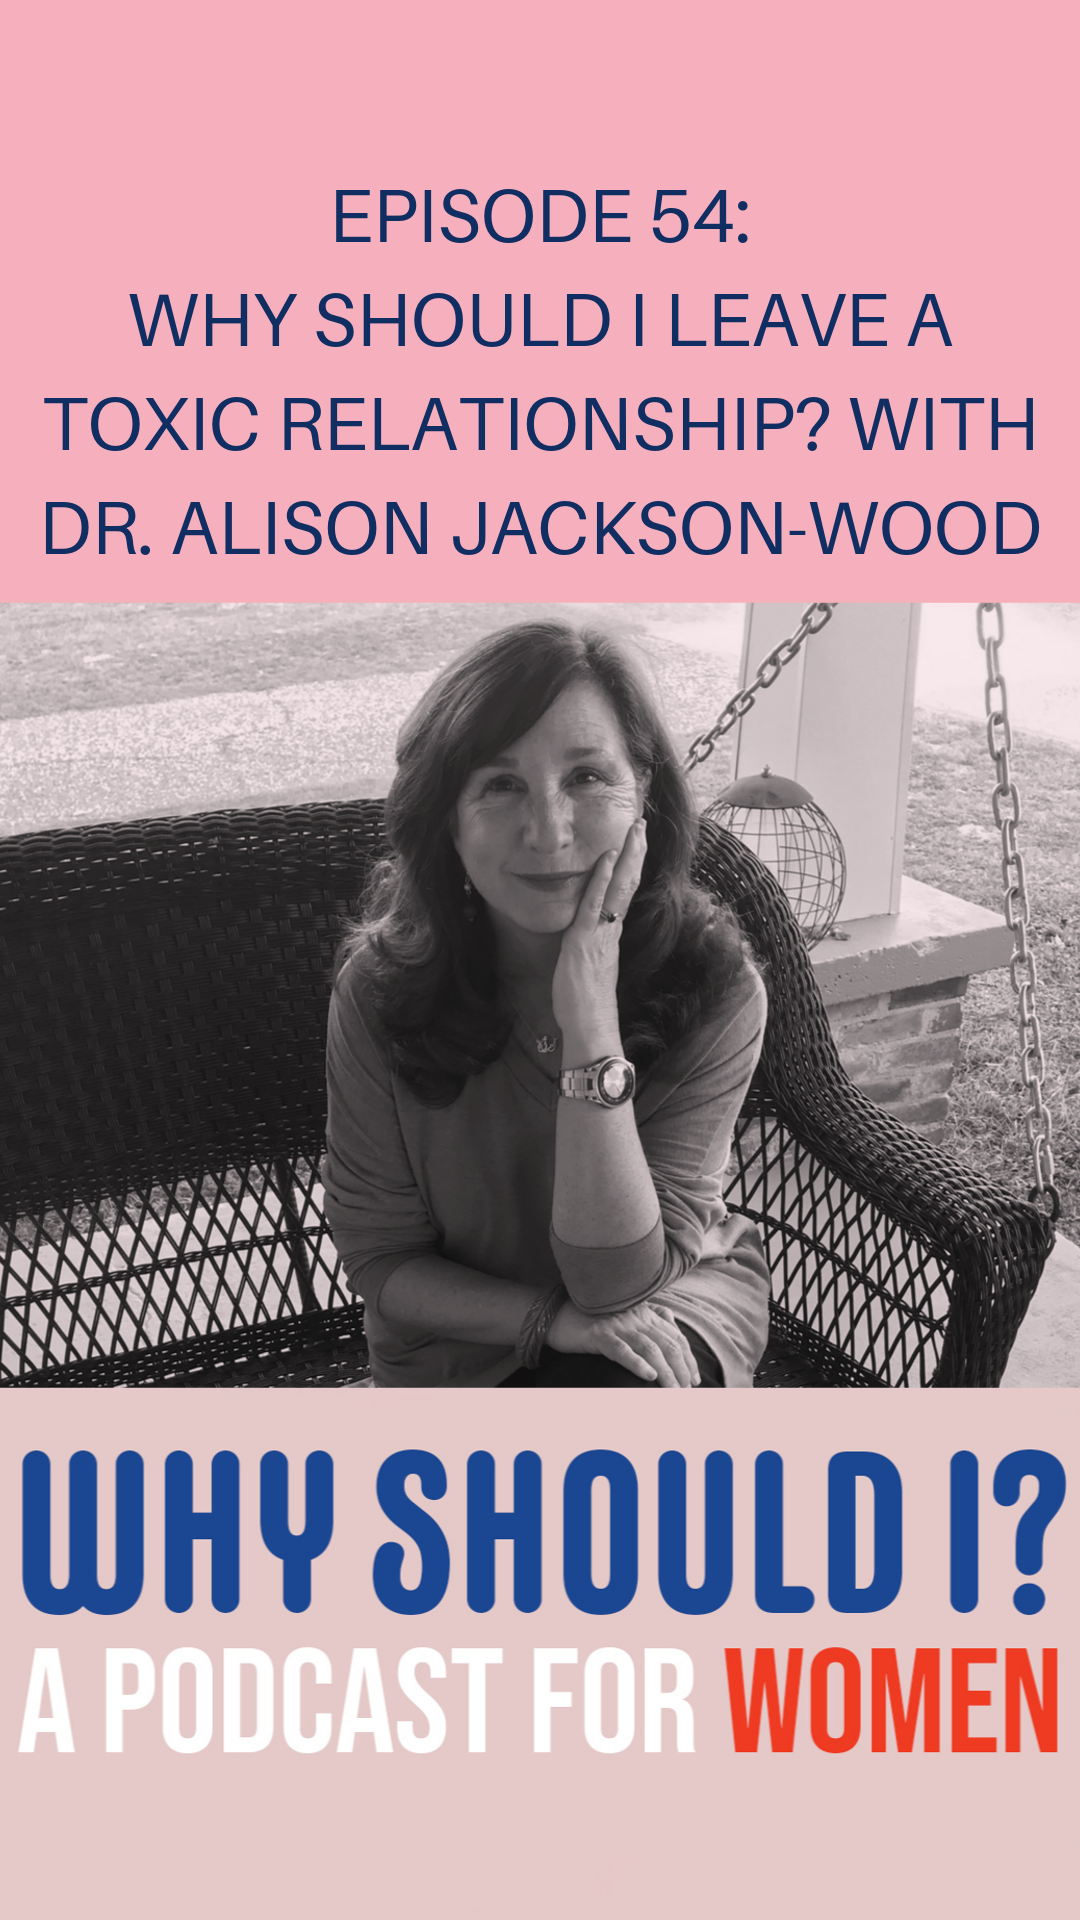 Why Should I Leave a Toxic Relationship? with Dr. Alison Jackson-Wood Why Should I? Podcast for Women